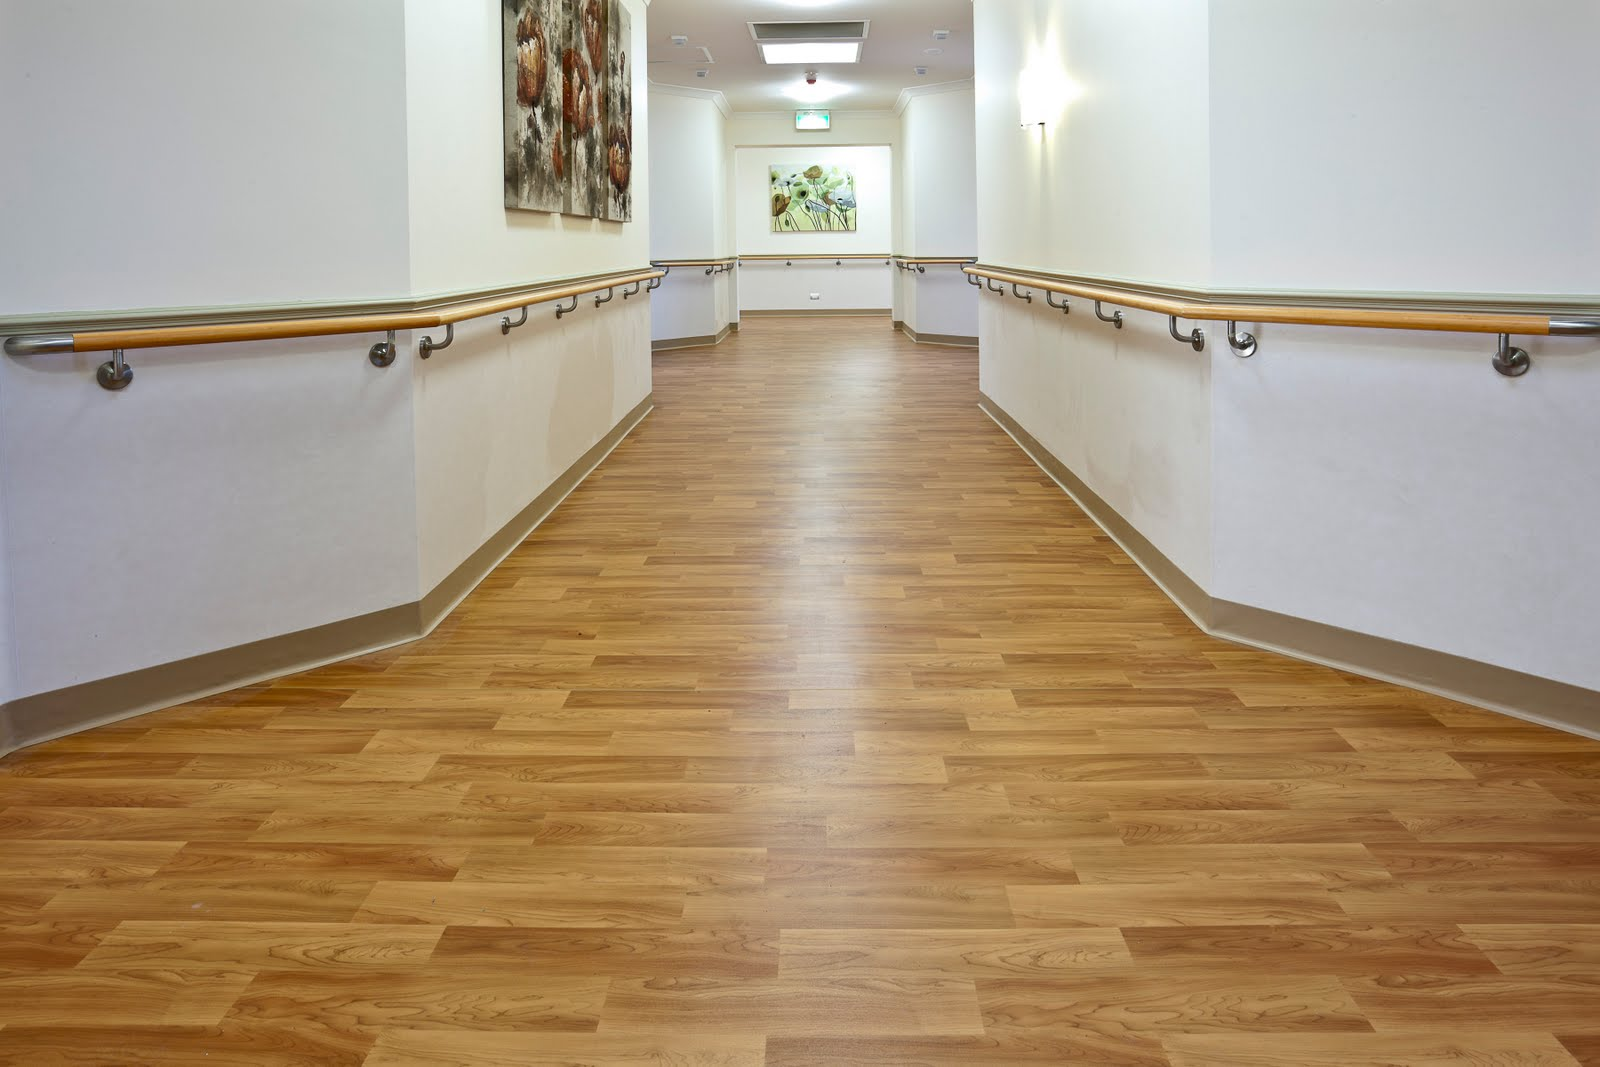 Vinyl Flooring Pros Cons Types HomeAdvisor - What is the best quality vinyl plank flooring